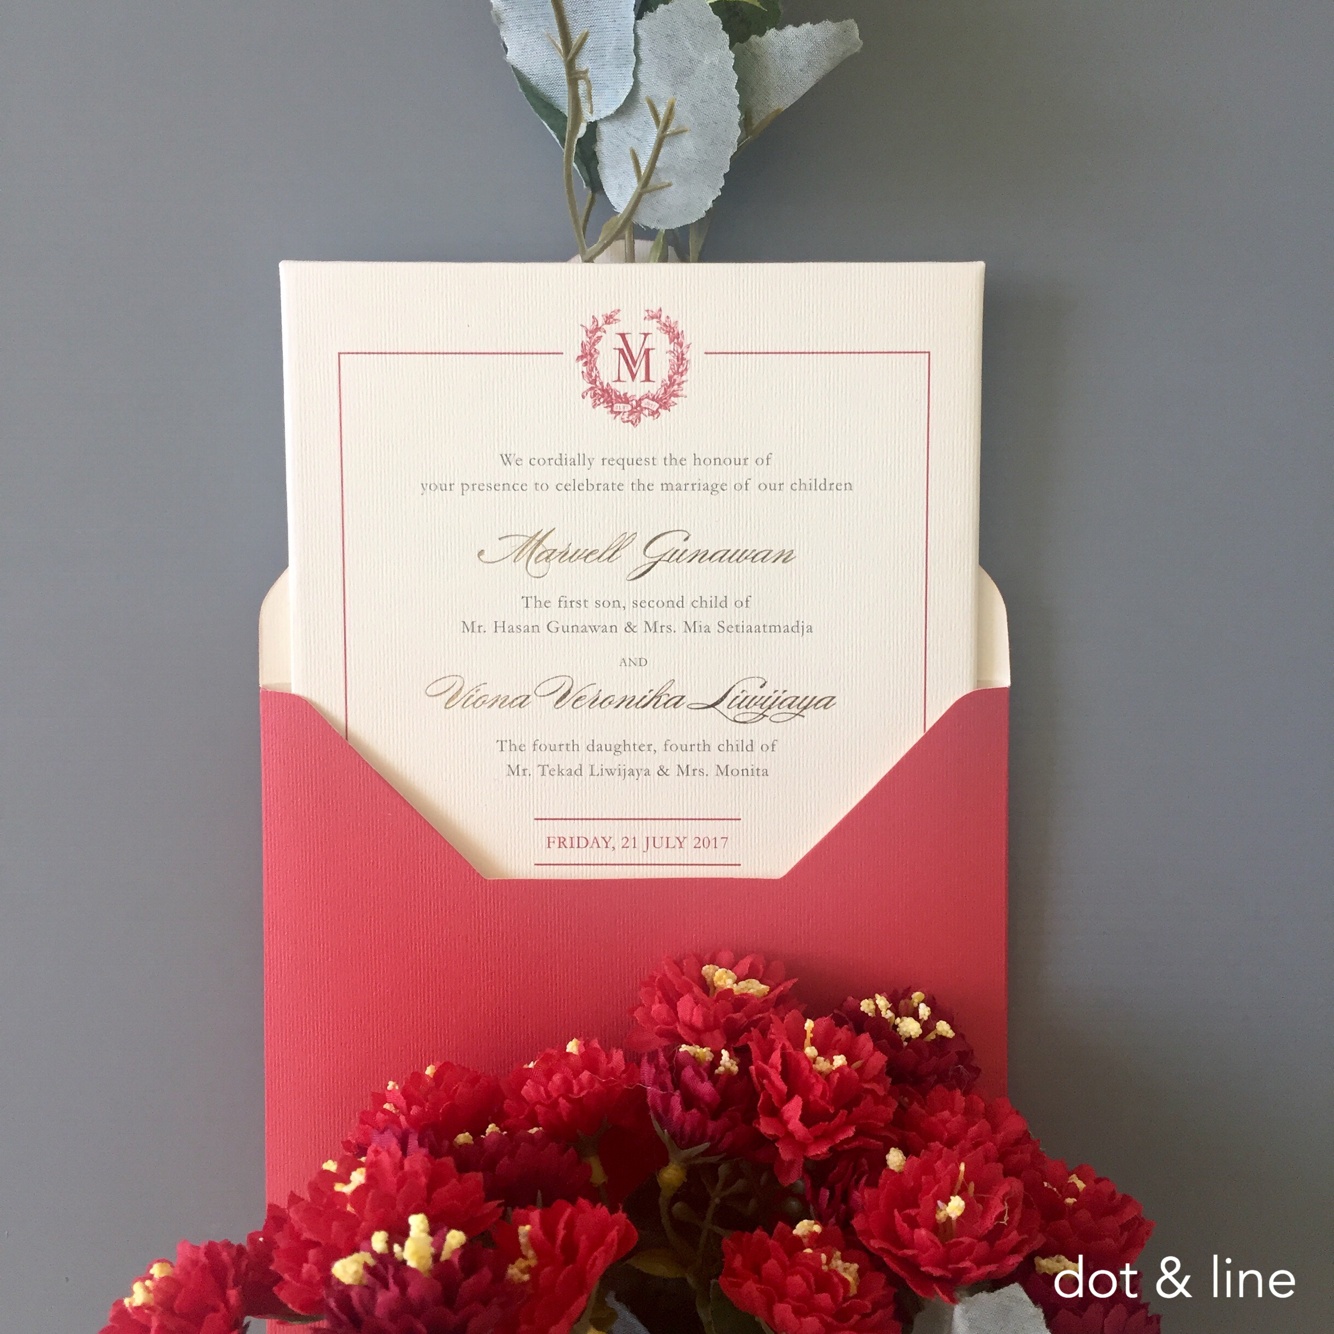 Directory of Wedding Invitations Vendors in Surabaya | Bridestory.com